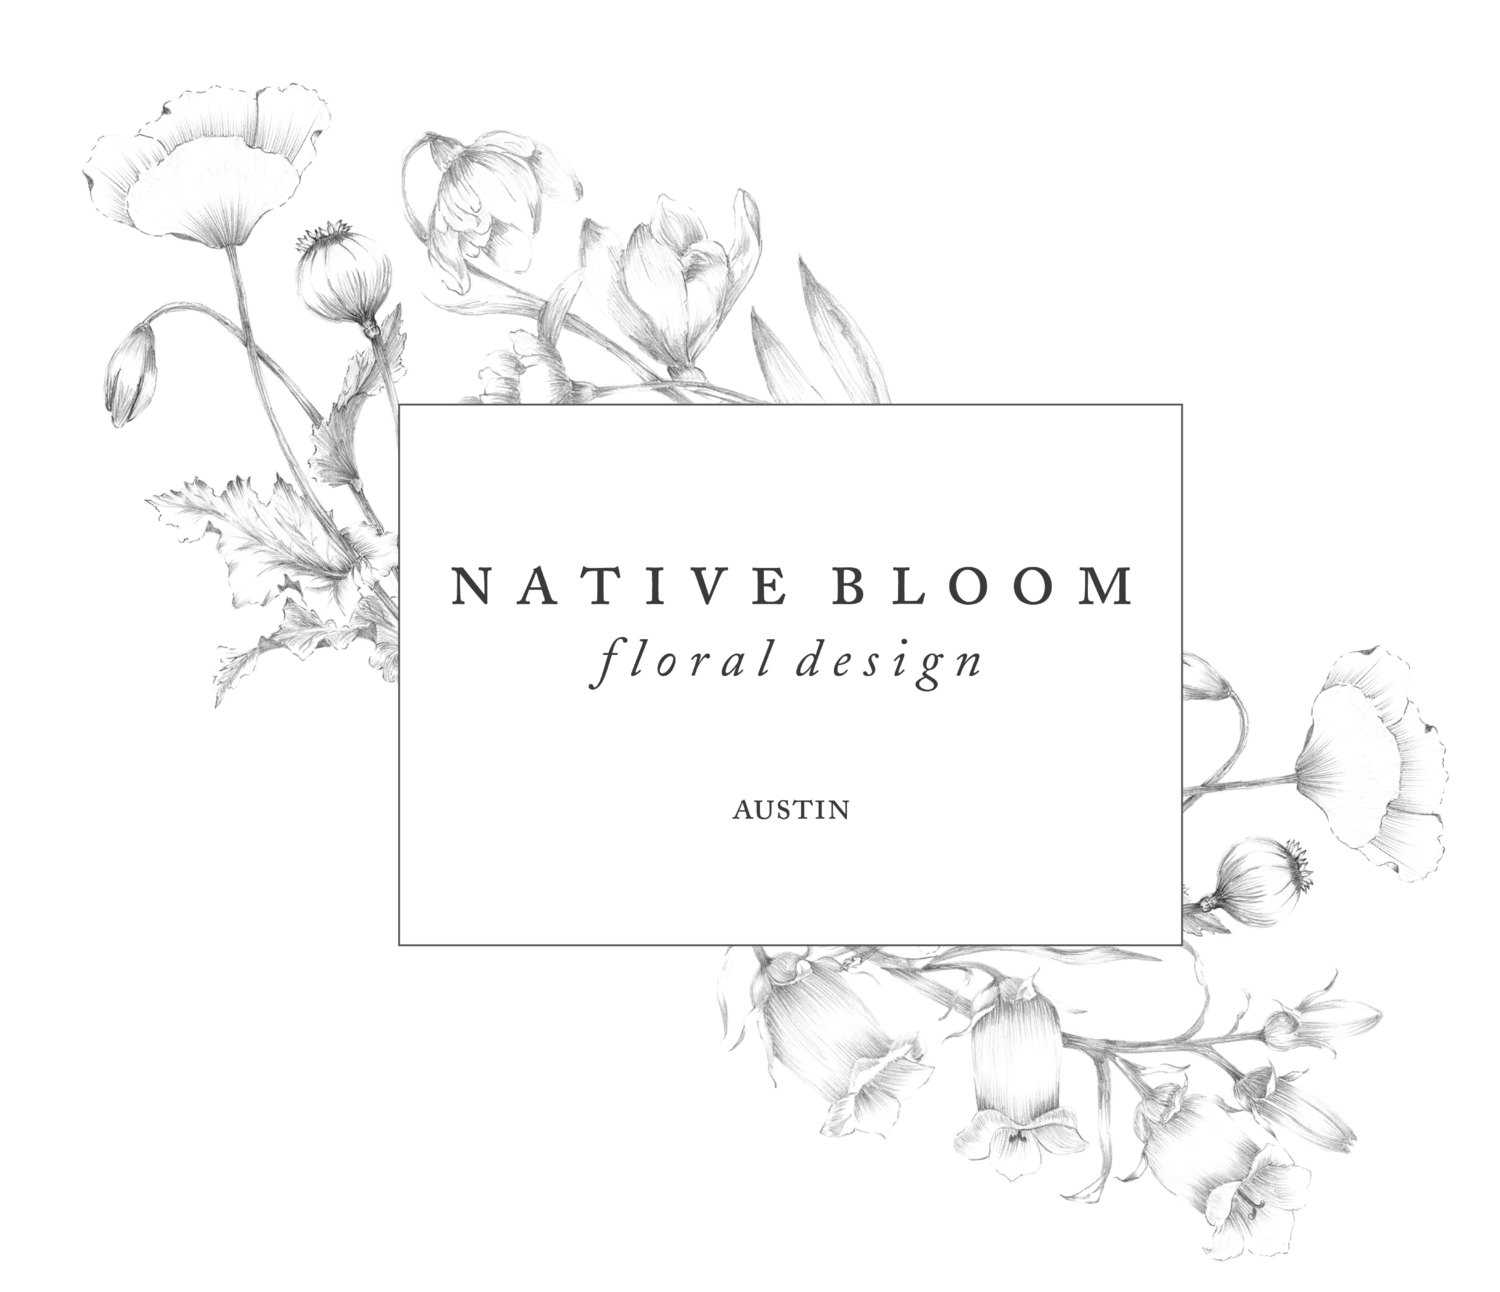 Native Bloom